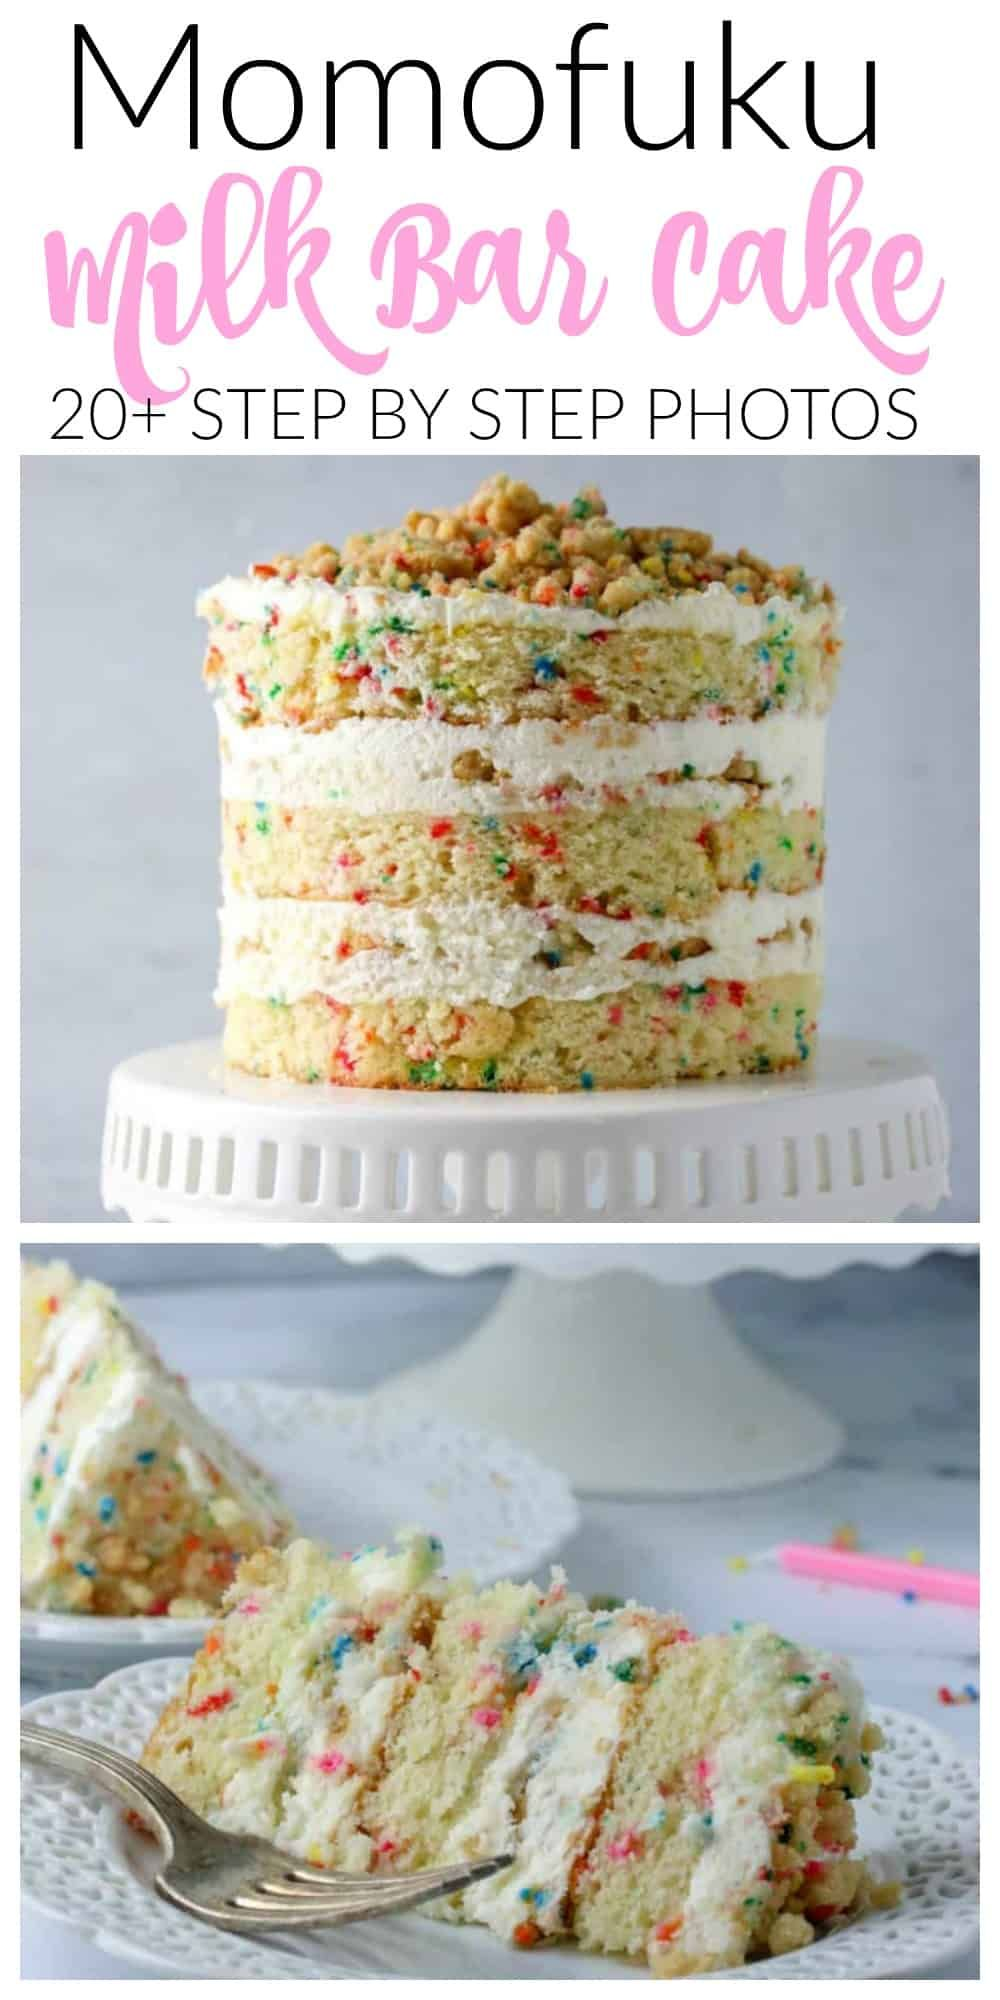 Momofuku Milk Bar Birthday Cake Recipe in 2020 Milk